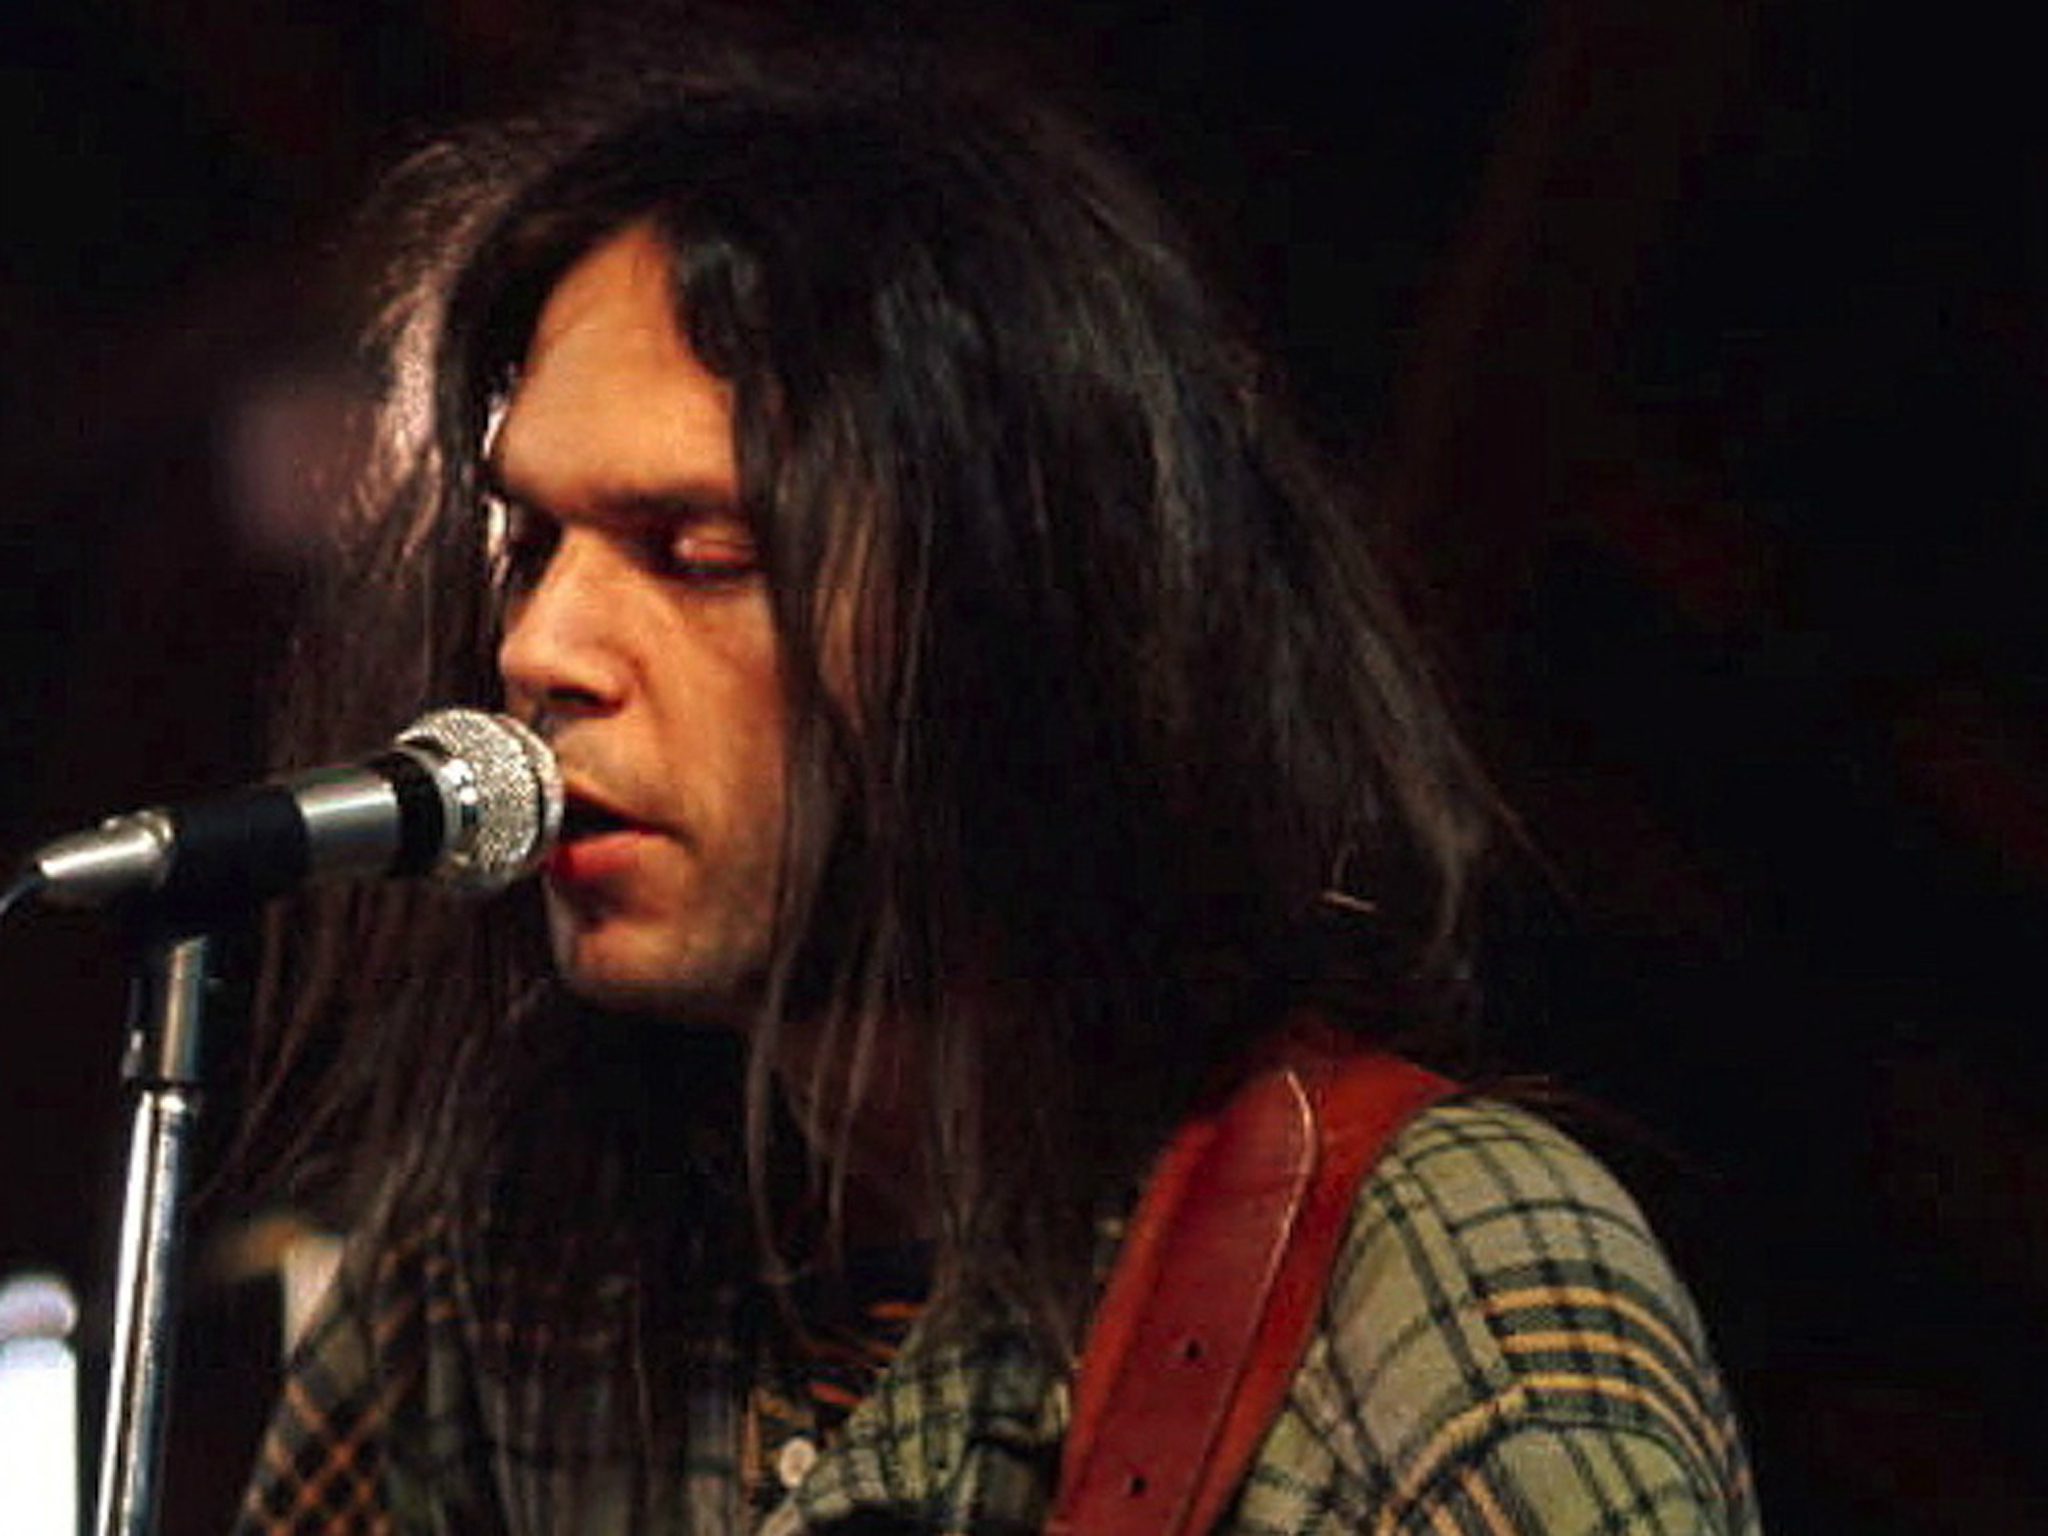 'Roll Another Number' – Neil Young